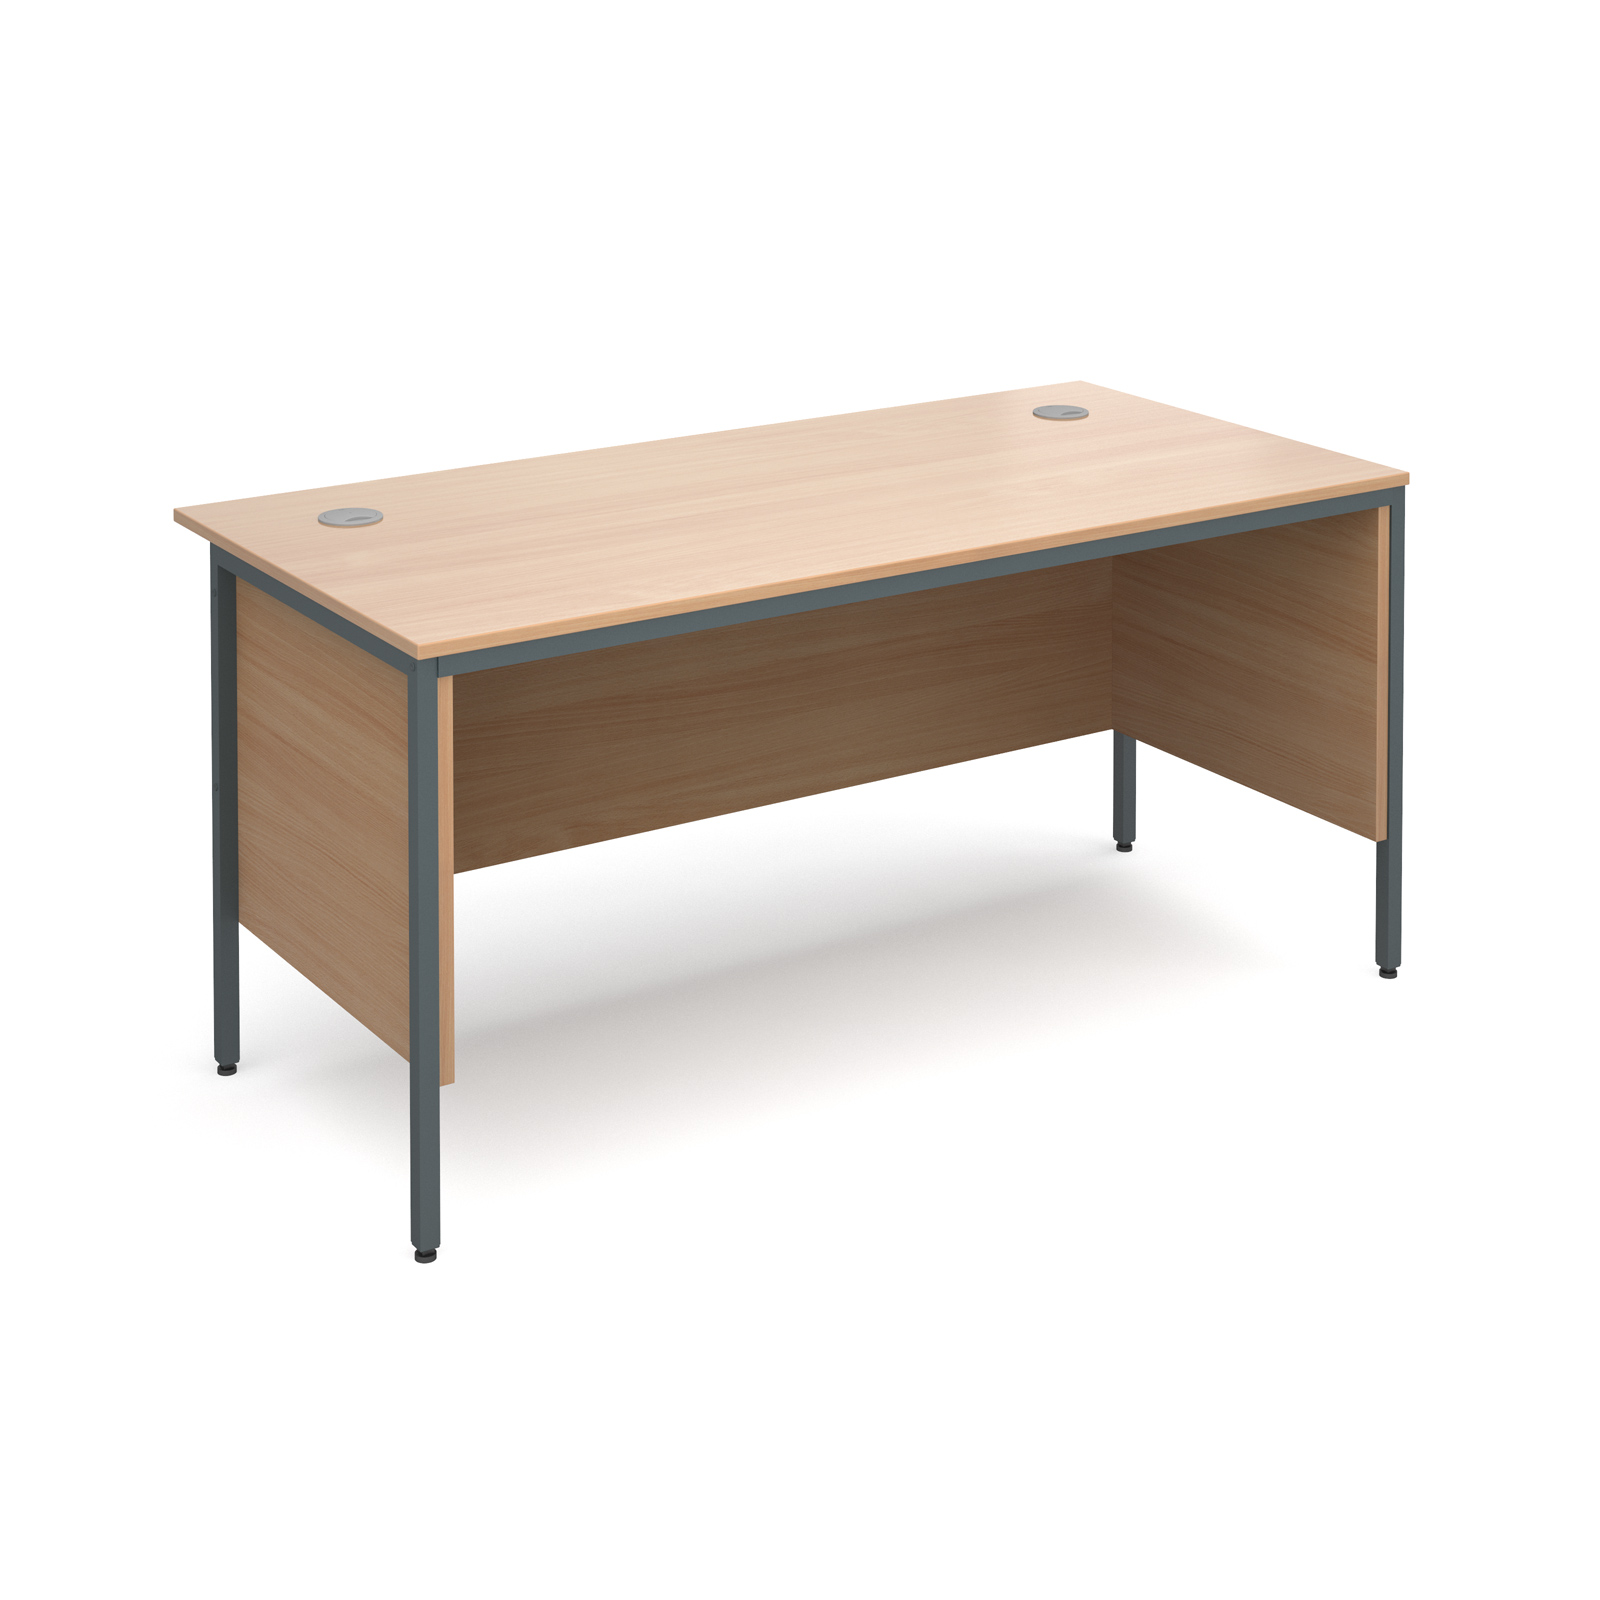 Maestro H frame straight desk with side panels 1532mm - beech